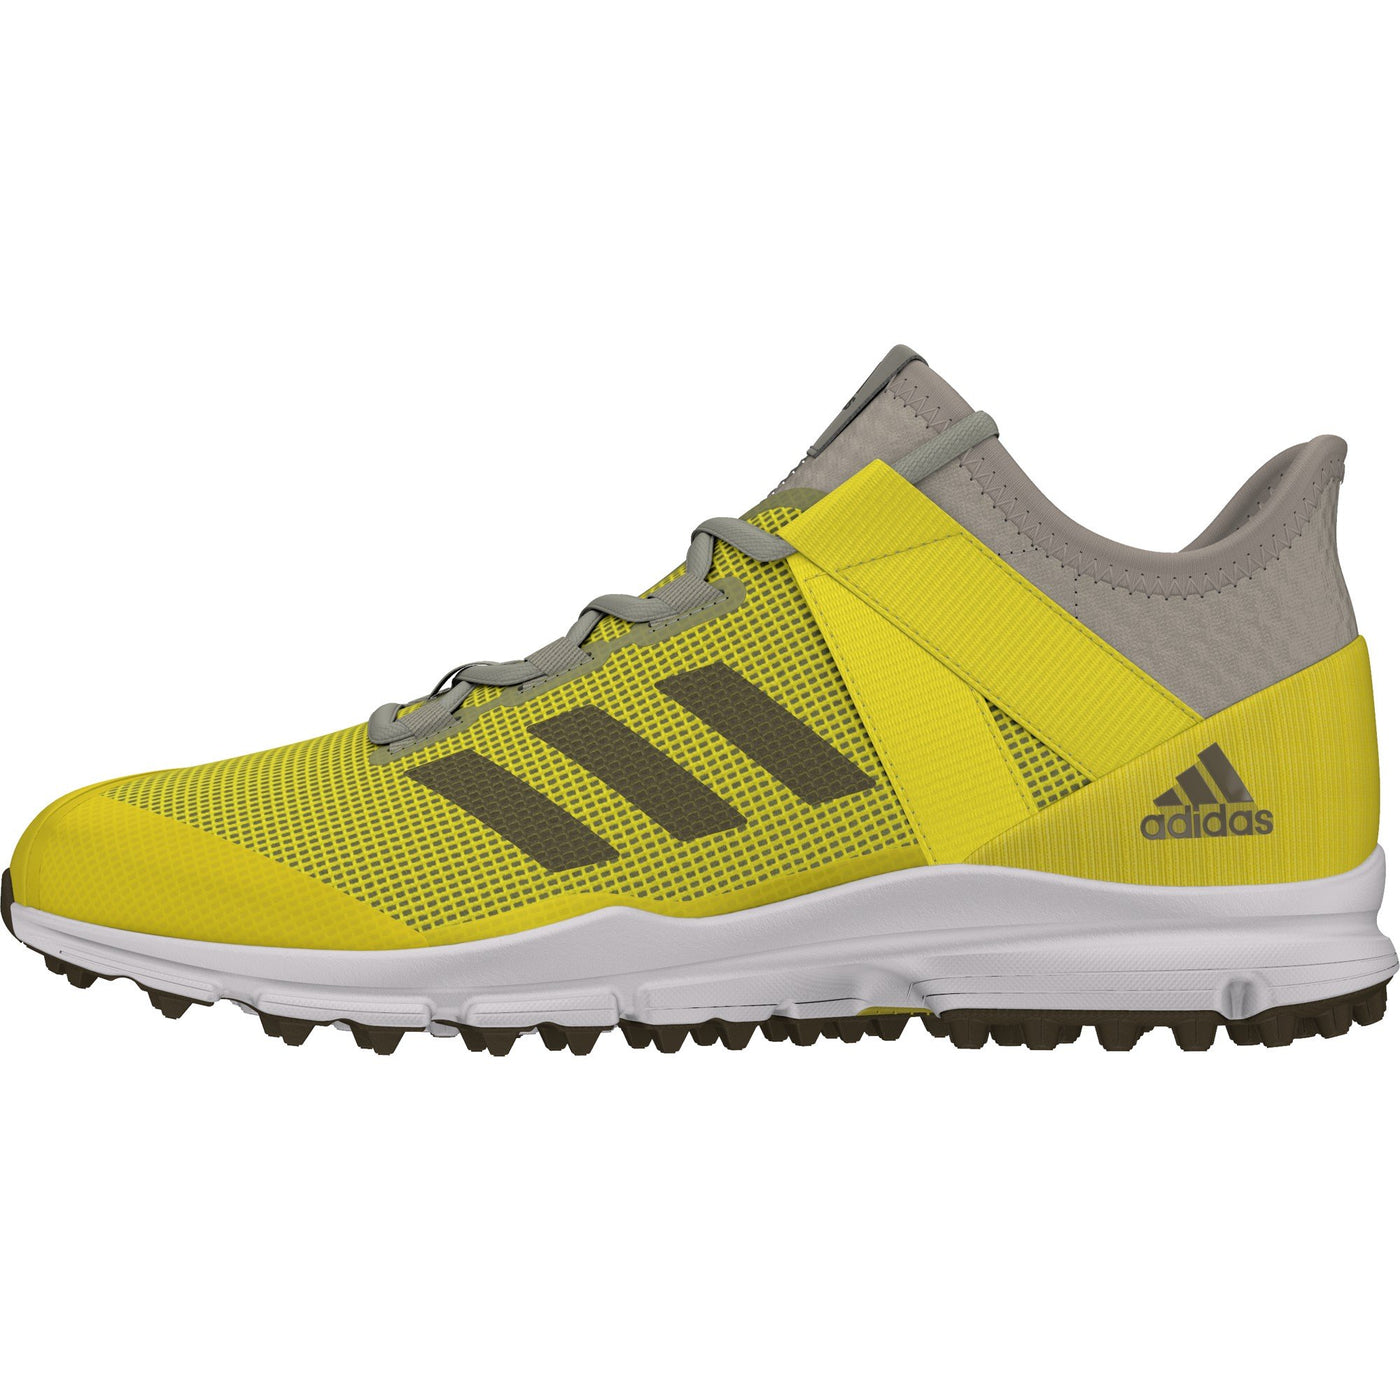 sports shoes 61e13 14157 inexpensive botines adidas hockey lux 8e776 67f97 official store  zapatillas hockey adidas zone dox amarillo gris f610d 1def4